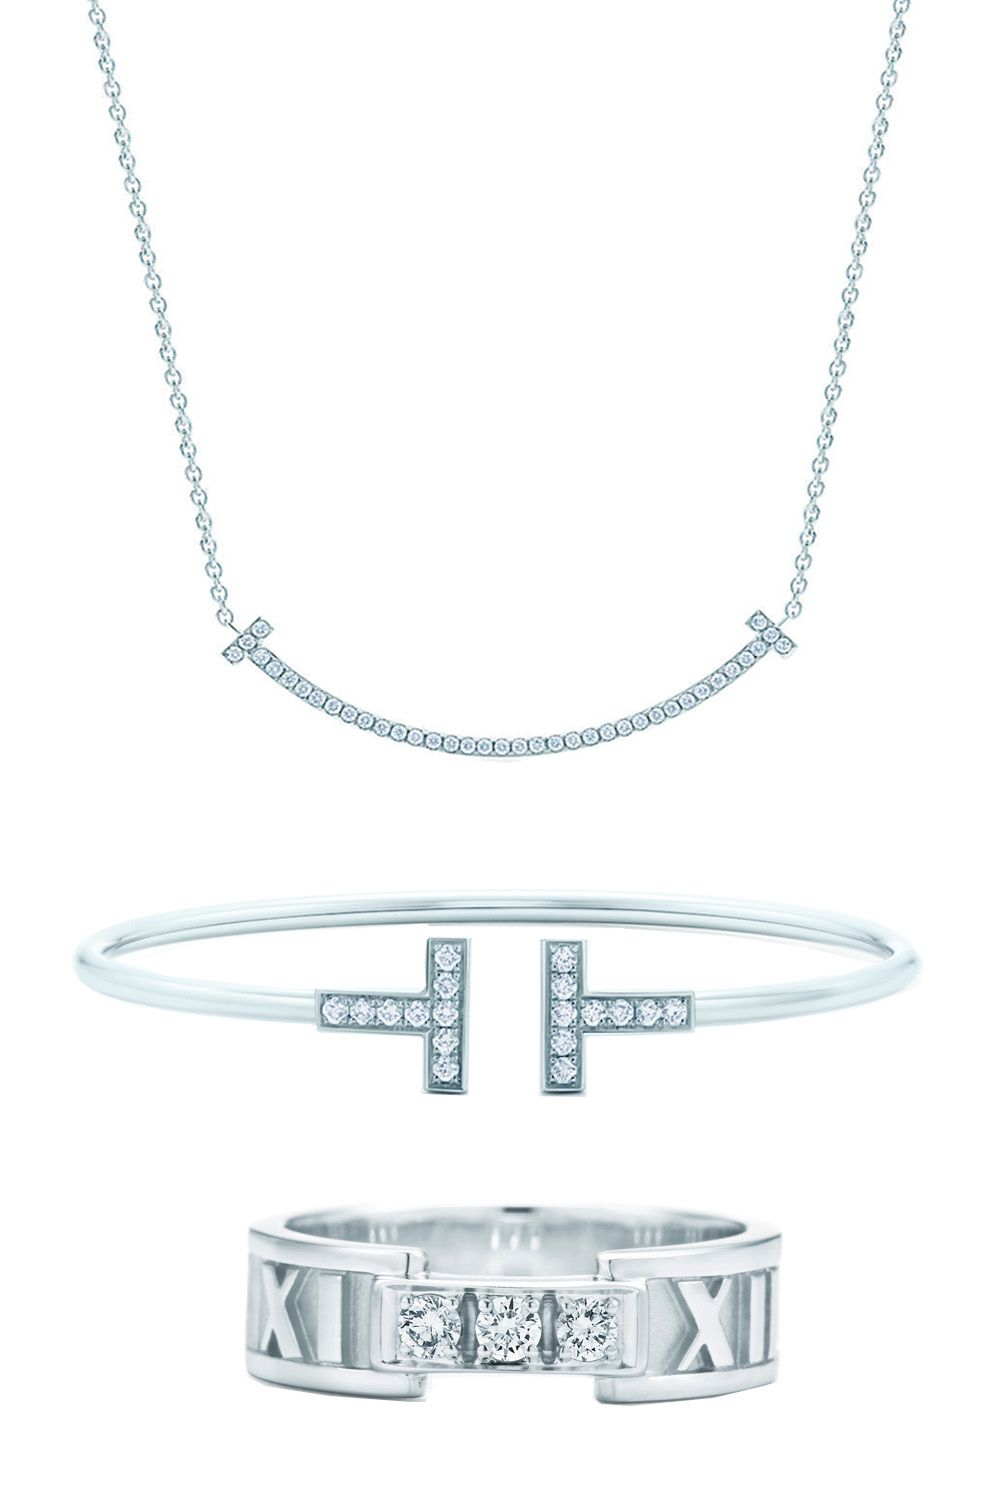 """<p>Tiffany & Co. Smile Pendant Necklace, $1,900; <a href=""""http://www.tiffany.com/jewelry/necklaces-pendants/tiffany-t-smile-pendant-34684448?fromGrid=1&search_params=p+1-n+10000-c+3240509-s+5-r+-t+-ni+1-x+-lr+-hr+-ri+-mi+-pp+1609+6&search=0&origin=browse&searchkeyword=&trackpdp=bg&fromcid=3240509"""">tiffany.com</a></p><p>Tiffany & Co. Wire Bracelet, $3,200; <a href=""""http://www.tiffany.com/jewelry/bracelets/tiffany-t-wire-bracelet-GRP07783?fromGrid=1&search_params=p+1-n+10000-c+3240509-s+5-r+-t+-ni+1-x+-lr+-hr+-ri+-mi+-pp+1709+6&search=0&origin=browse&searchkeyword=&trackpdp=bg&fromcid=3240509"""">tiffany.com</a></p><p>Tiffany & Co. Atlas® Open Ring, $2,100; <a href=""""http://www.tiffany.com/jewelry/rings/atlas-open-ring-GRP02996?fromGrid=1&search_params=p+1-n+10000-c+288192-s+5-r+-t+-ni+1-x+-lr+-hr+-ri+-mi+-pp+3285+6&search=0&origin=browse&searchkeyword=&trackpdp=bg&fromcid=288192"""">tiffany.com</a></p>"""